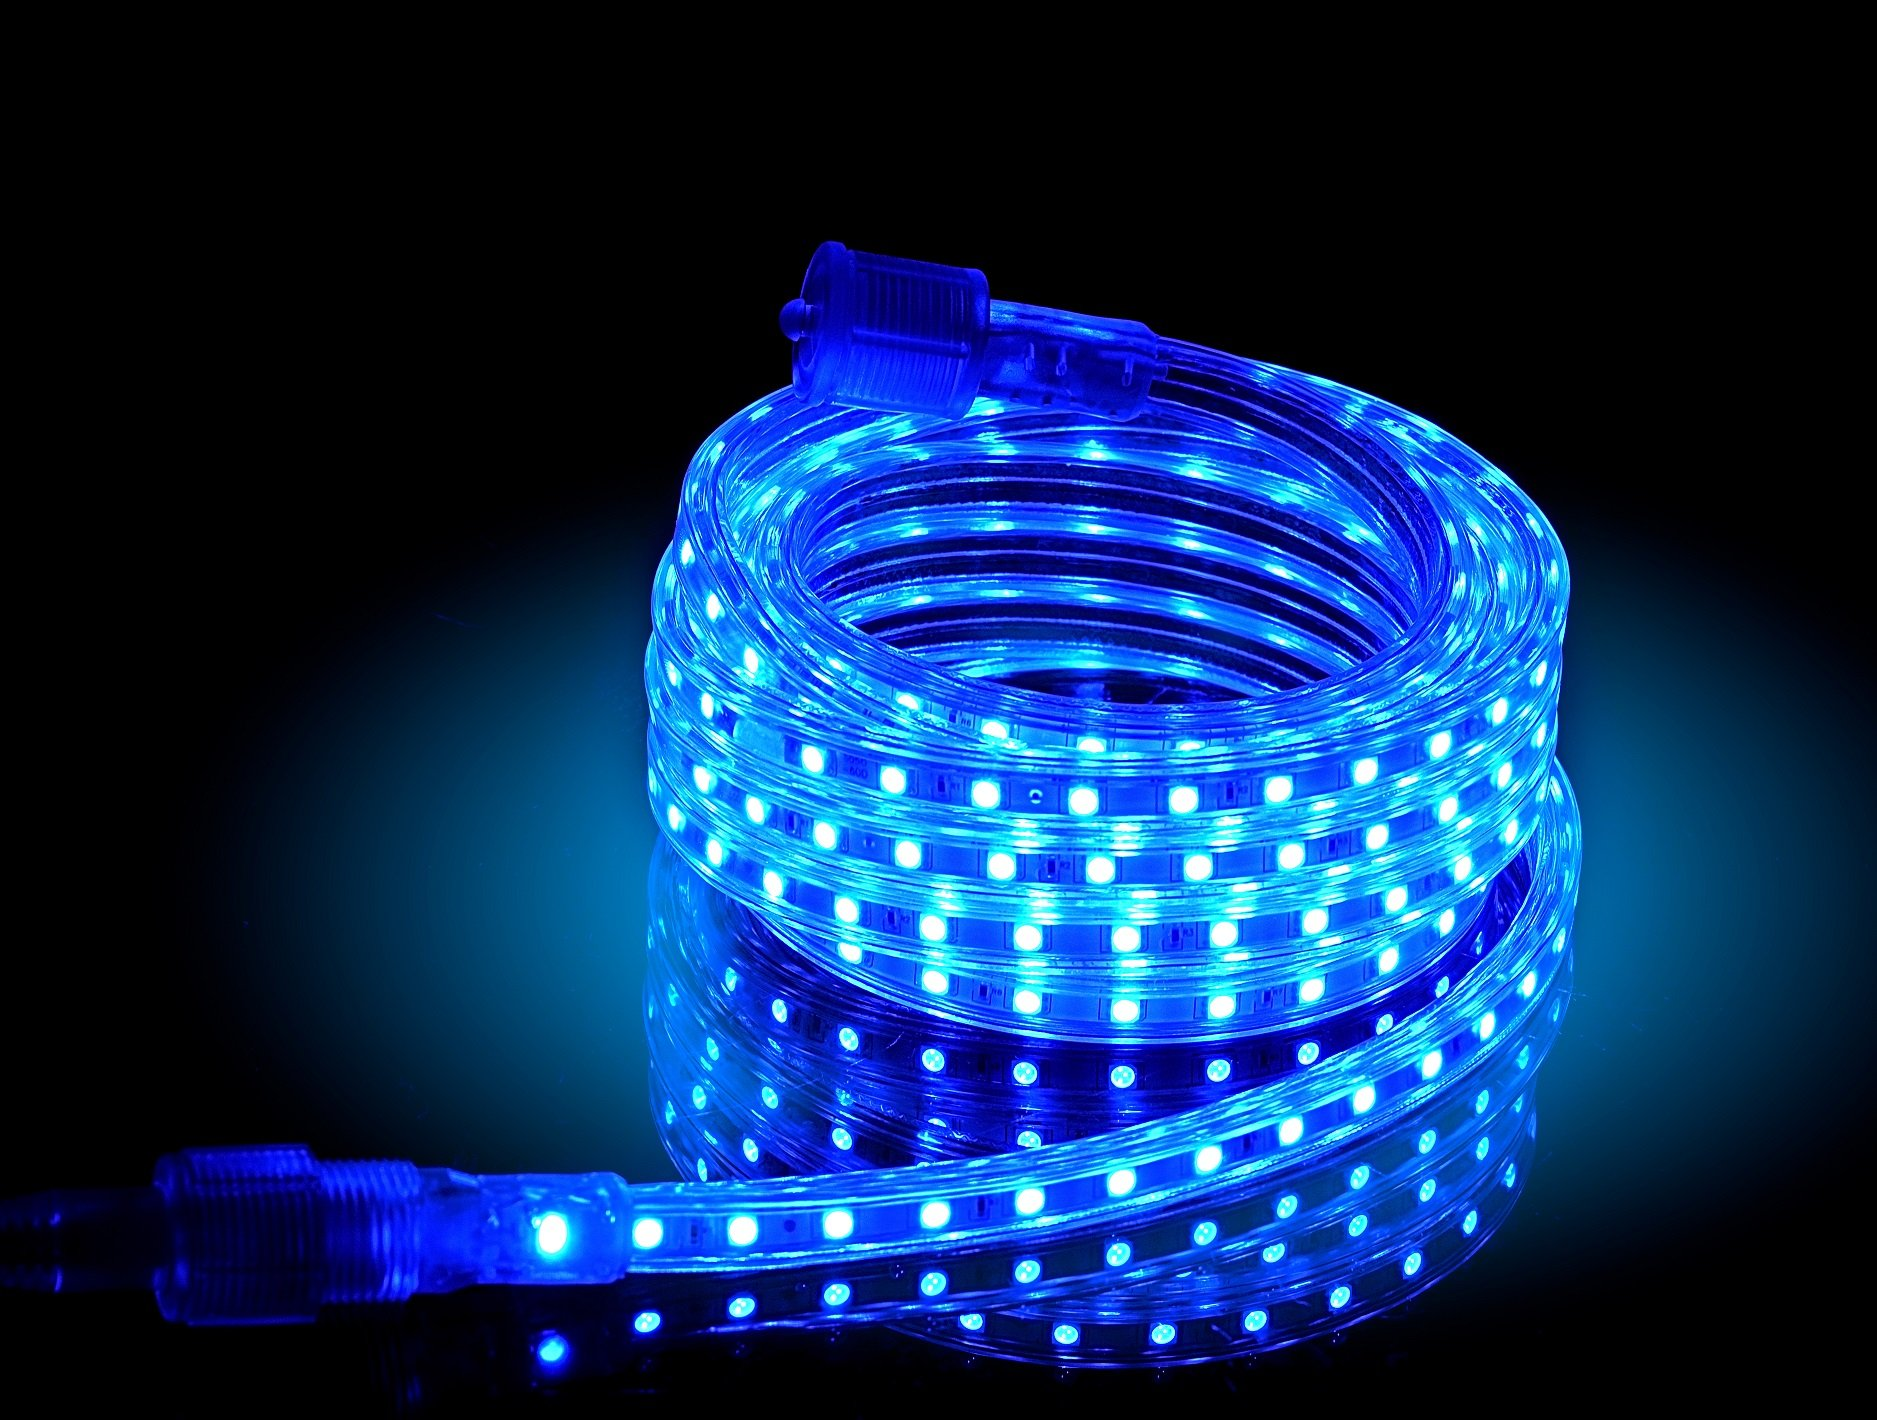 CBConcept UL Listed, 65 Feet,Super Bright 18000 Lumen, Blue, Dimmable, 110-120V AC Flexible Flat LED Strip Rope Light, 1200 Units 5050 SMD LEDs, Indoor/Outdoor Use, [Ready to use] by CBconcept (Image #2)